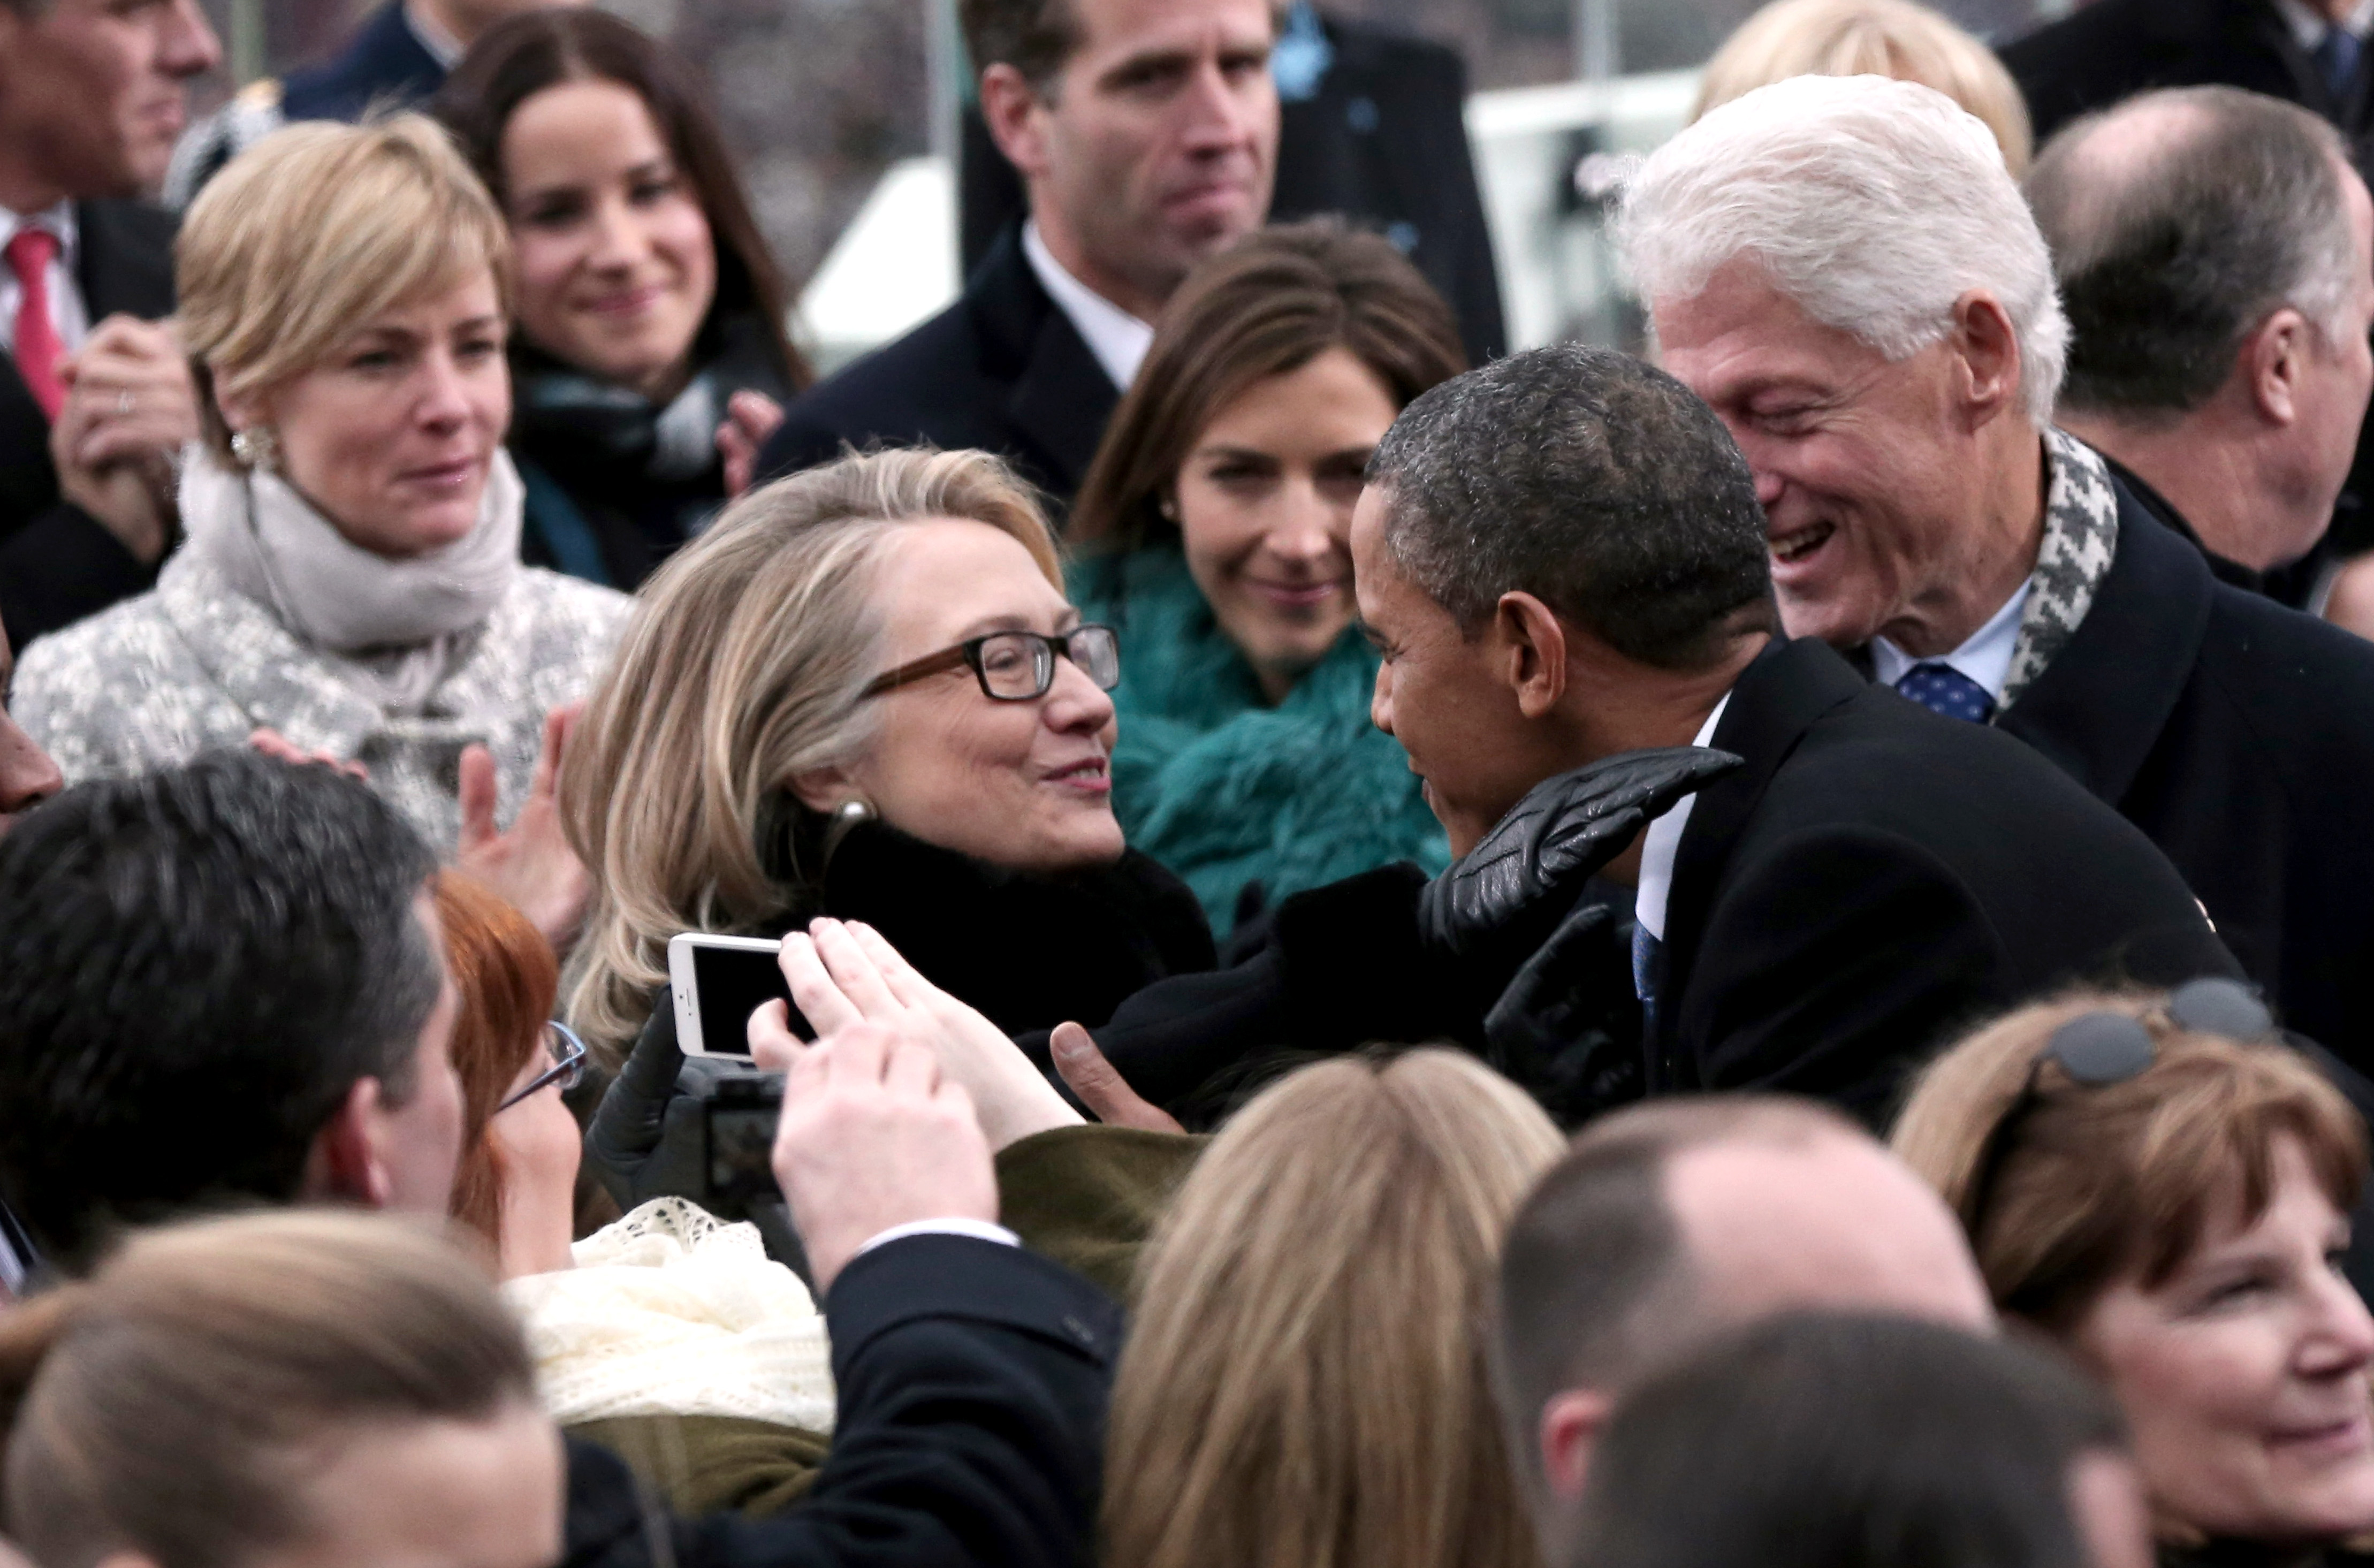 January 2013 President Barack Obama greets then-Secretary of State Hillary Clinton and former president Bill Clinton during the presidential inauguration on the West Front of the U.S. Capitol on Jan. 21, 2013 in Washington when Obama was re-elected for a second term.